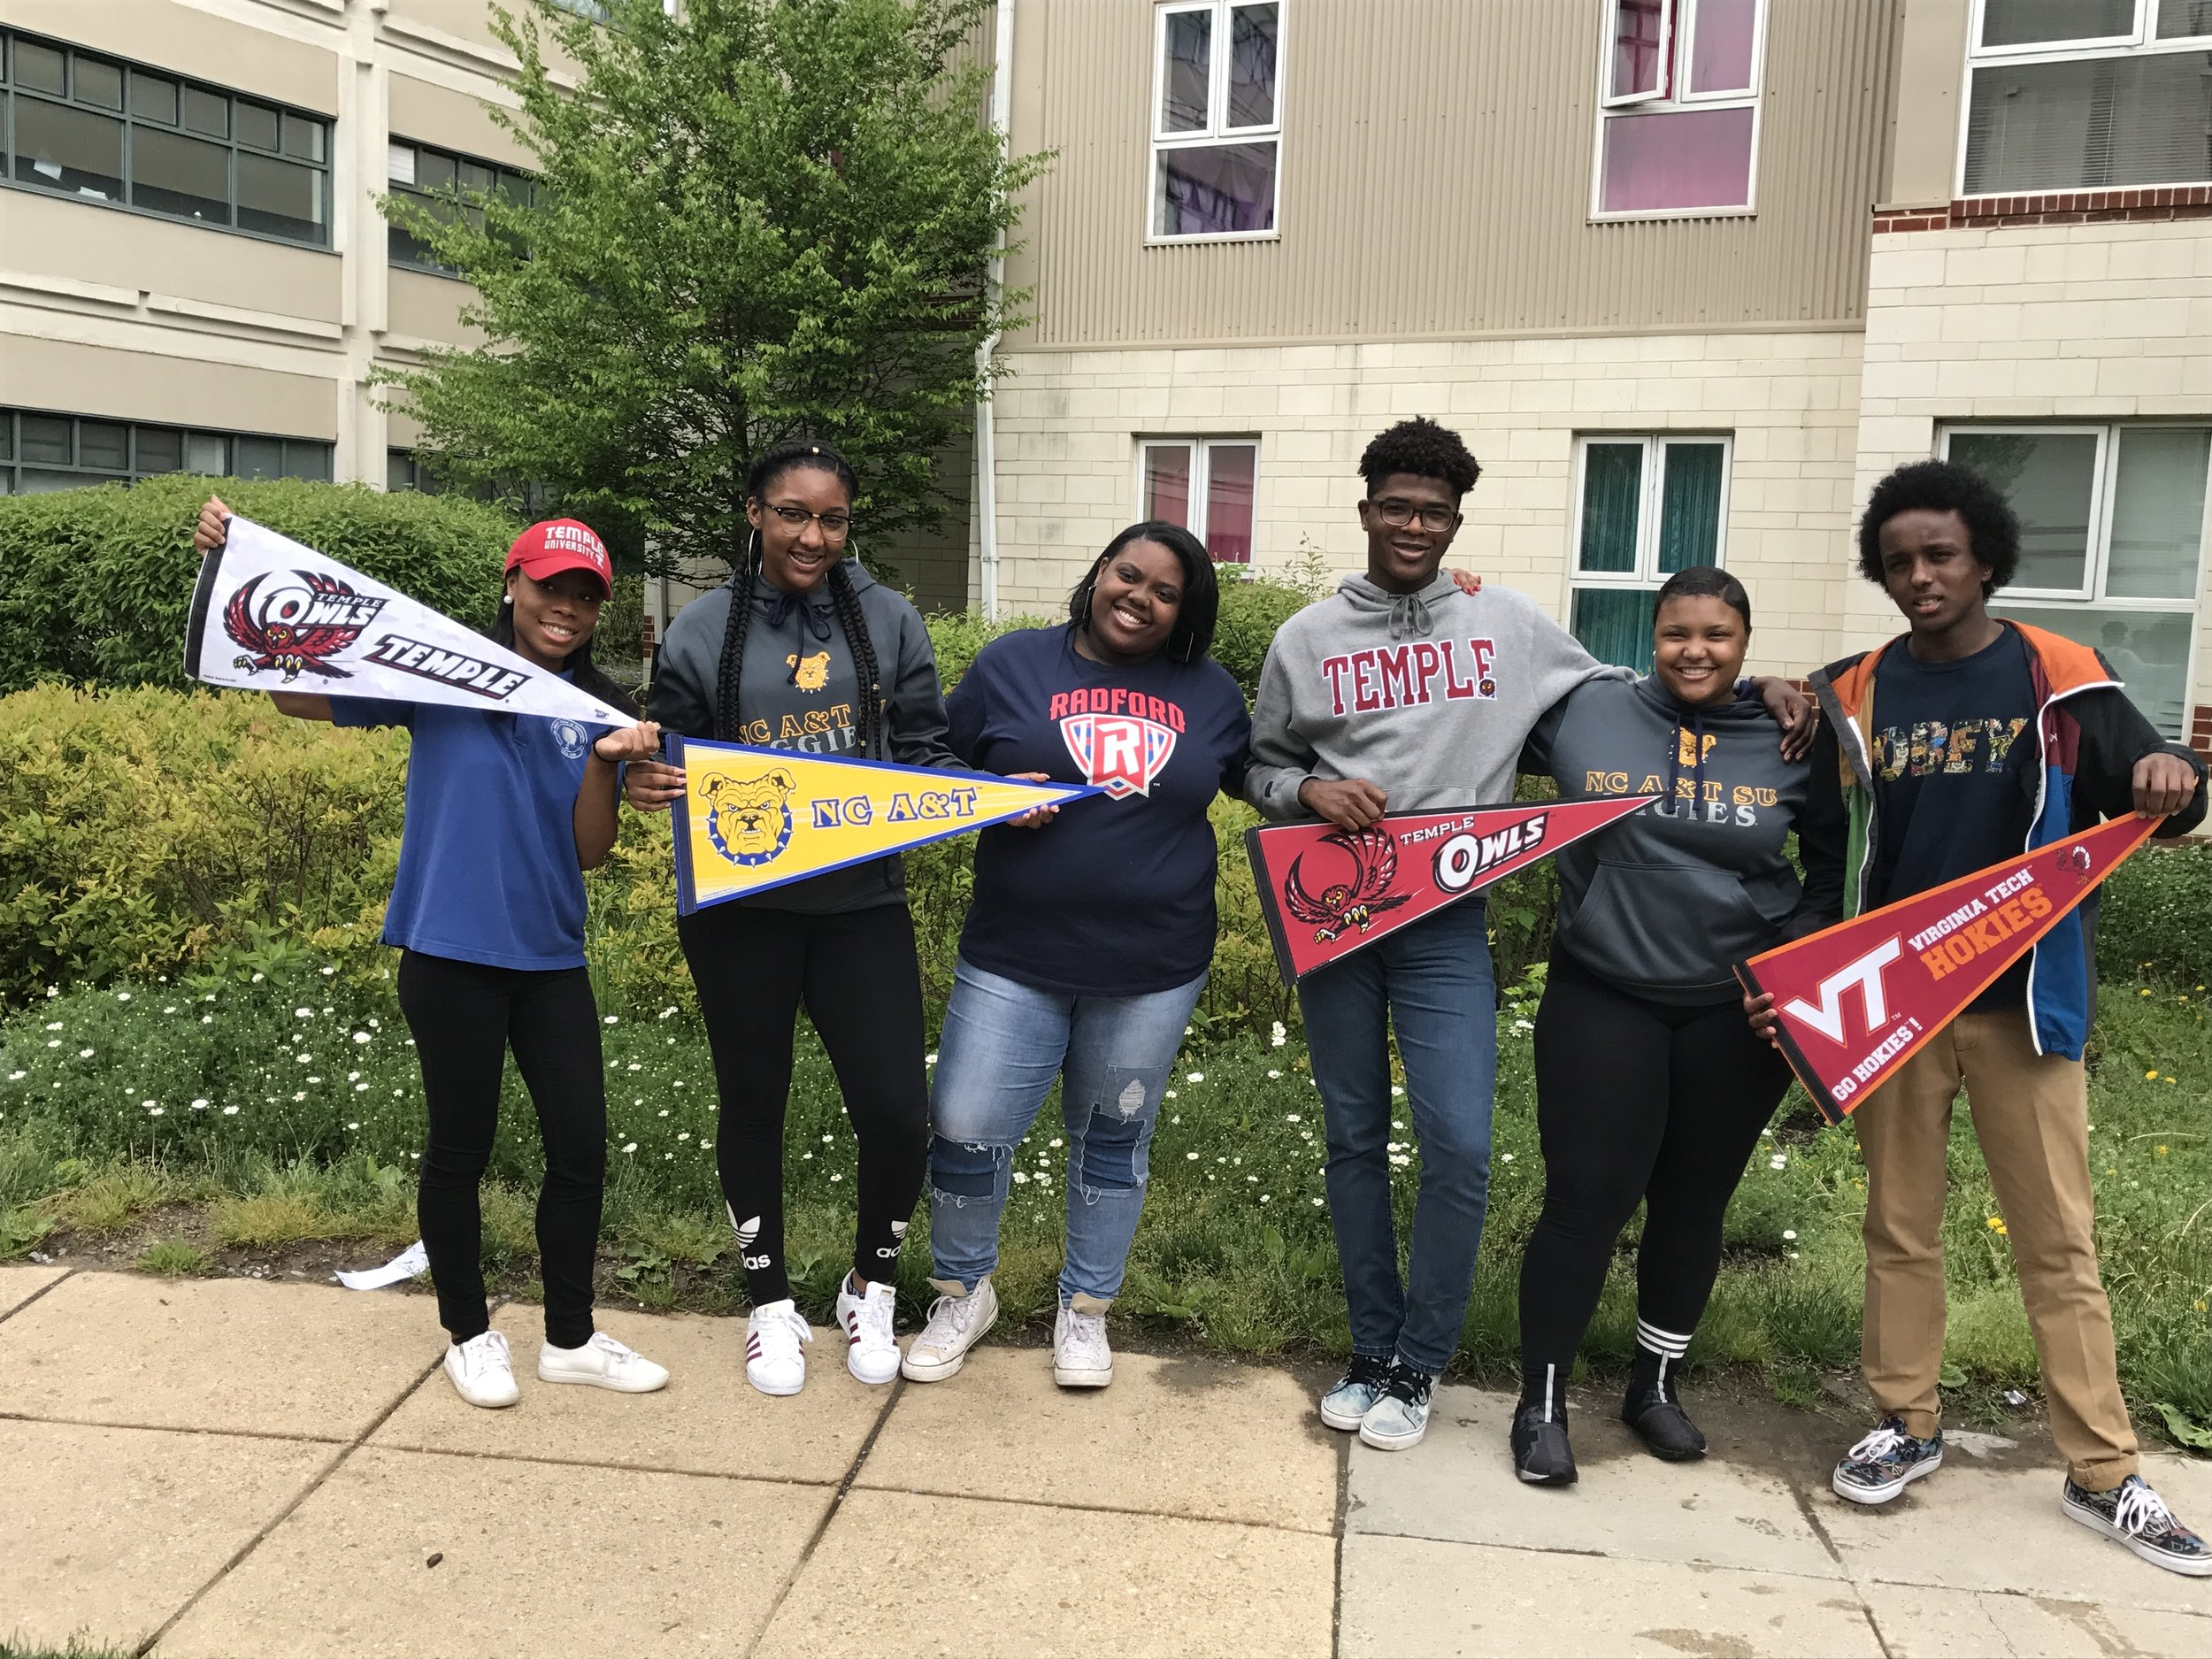 2017 grads with college pennants.jpg